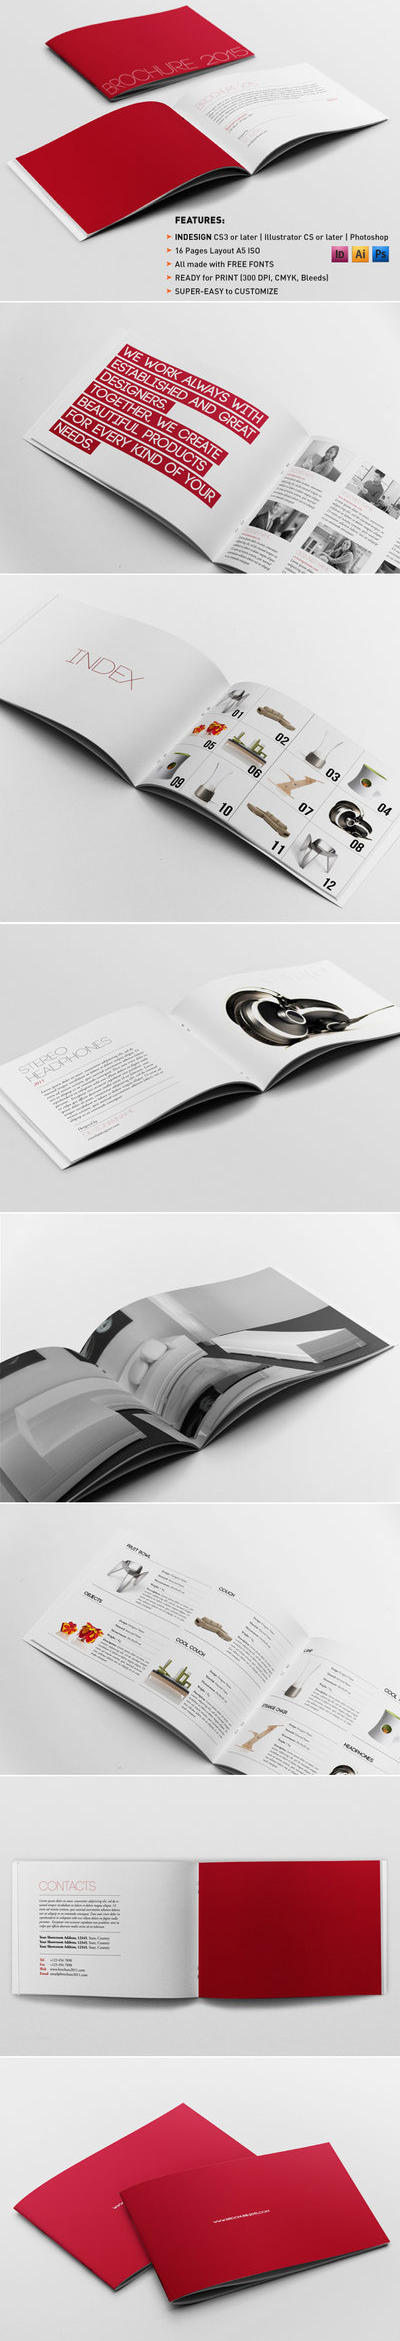 Pin de Cecily | The Paper Curator en Layout | Pinterest